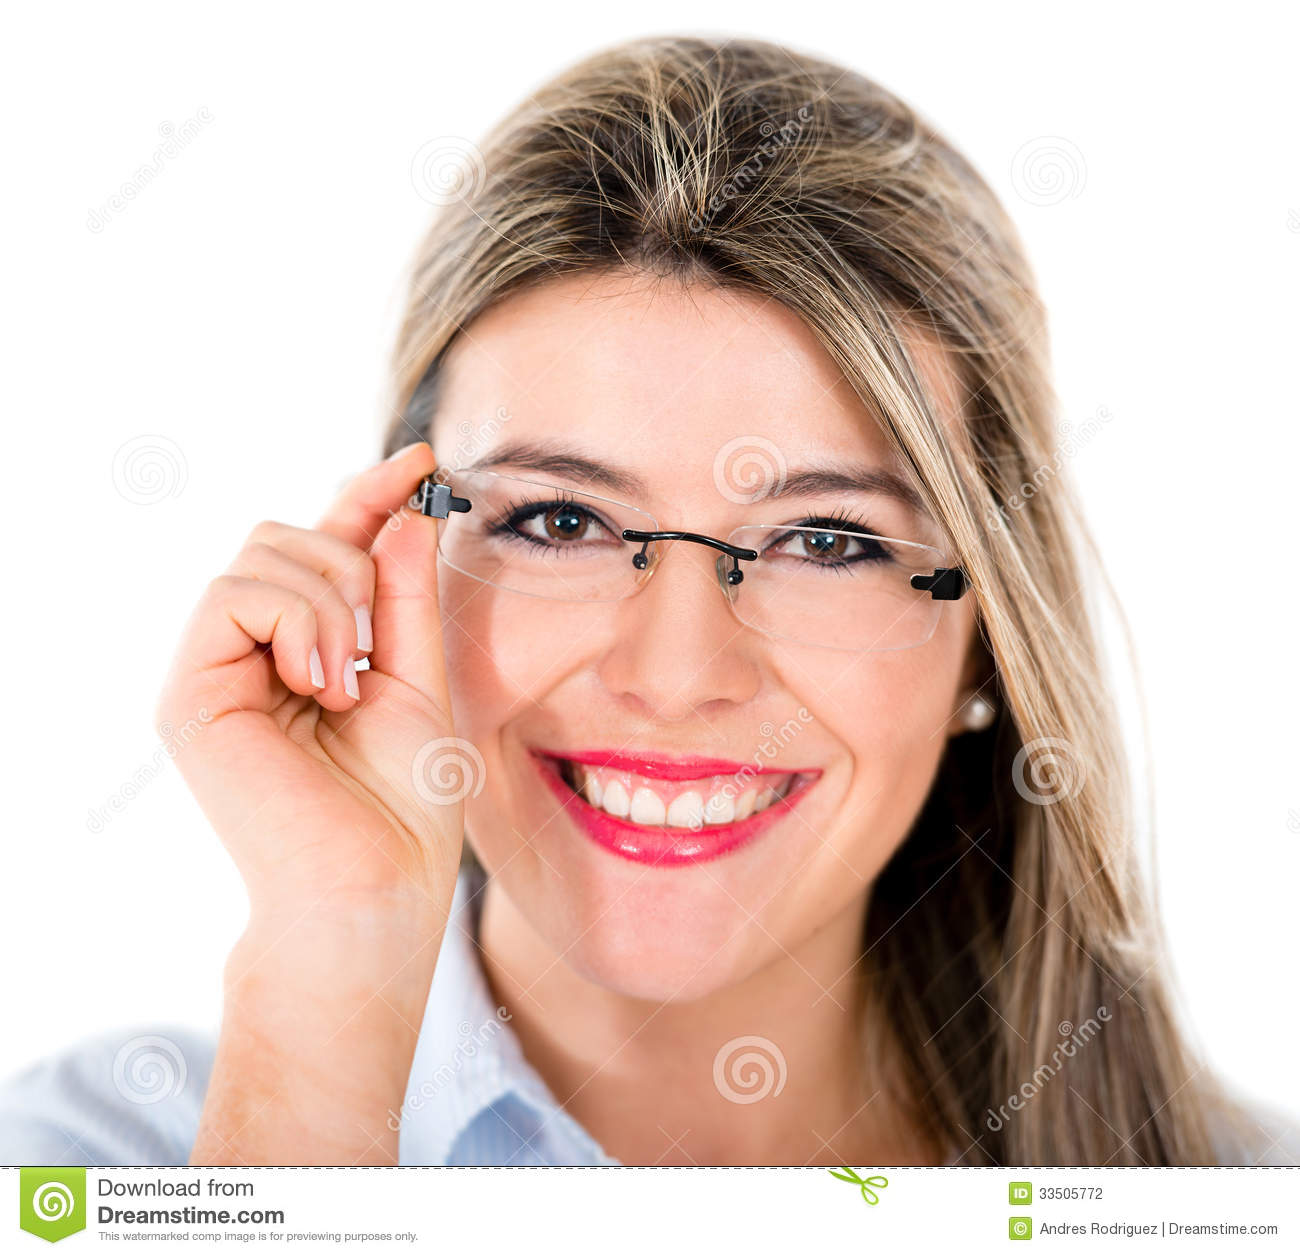 Happy woman portrait wearing glasses - isolated over white.